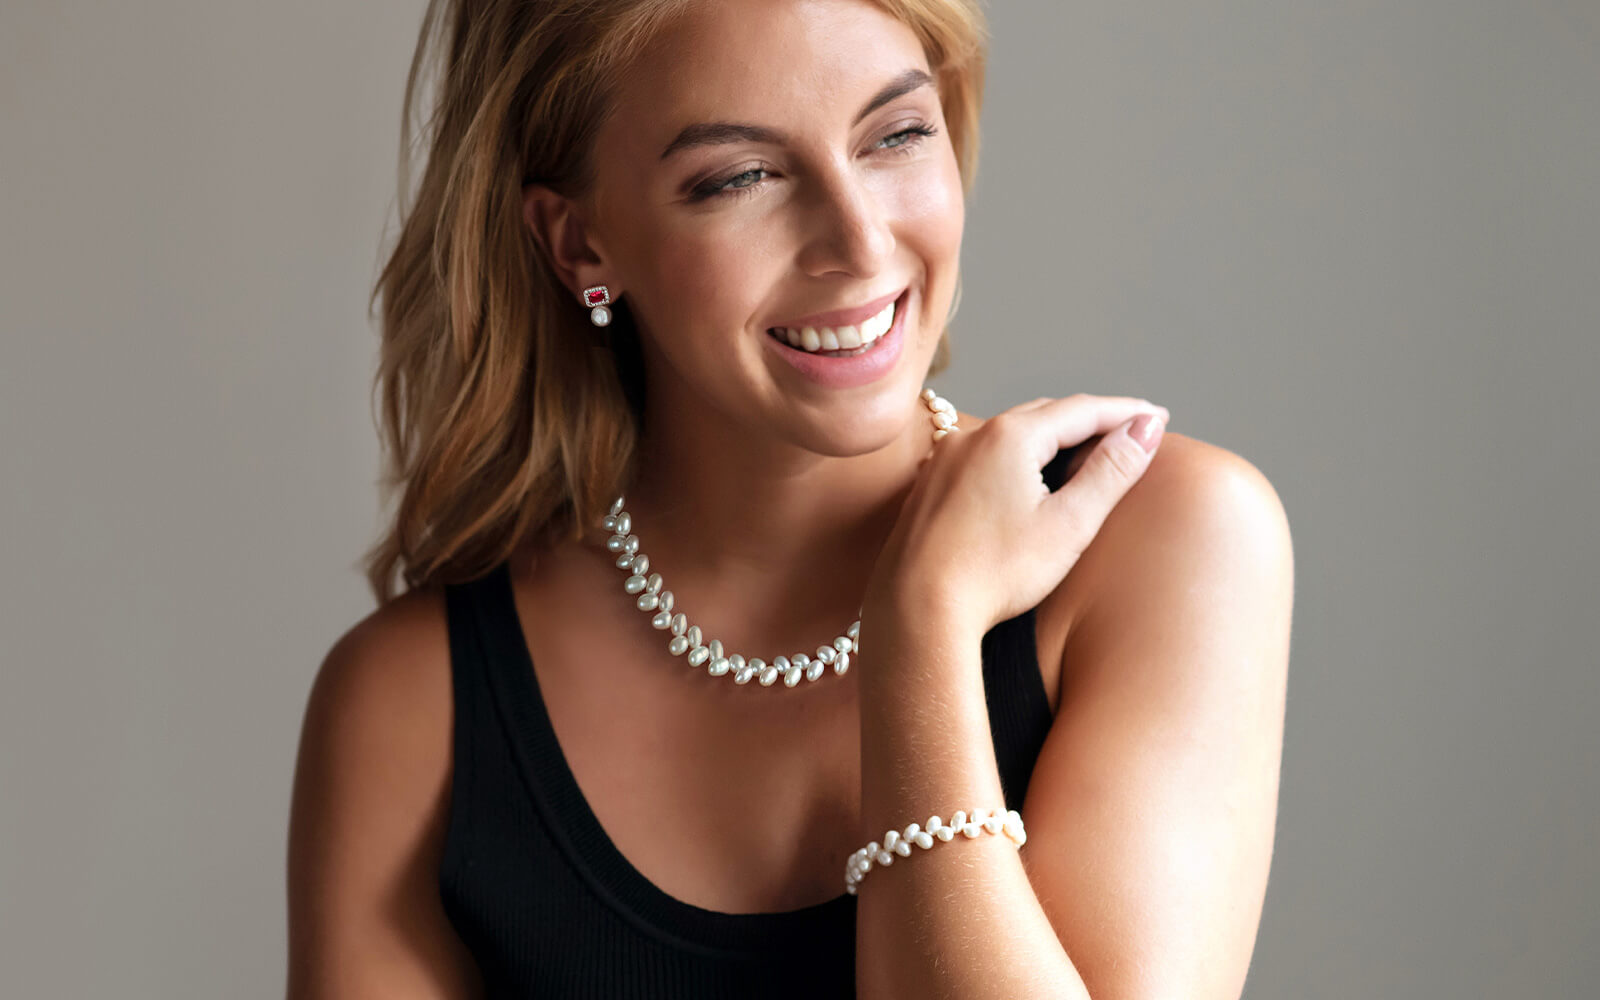 Amazing Pearl Gifts For Her Perfect For Any Occasion The Most Treasured Gift Of Love